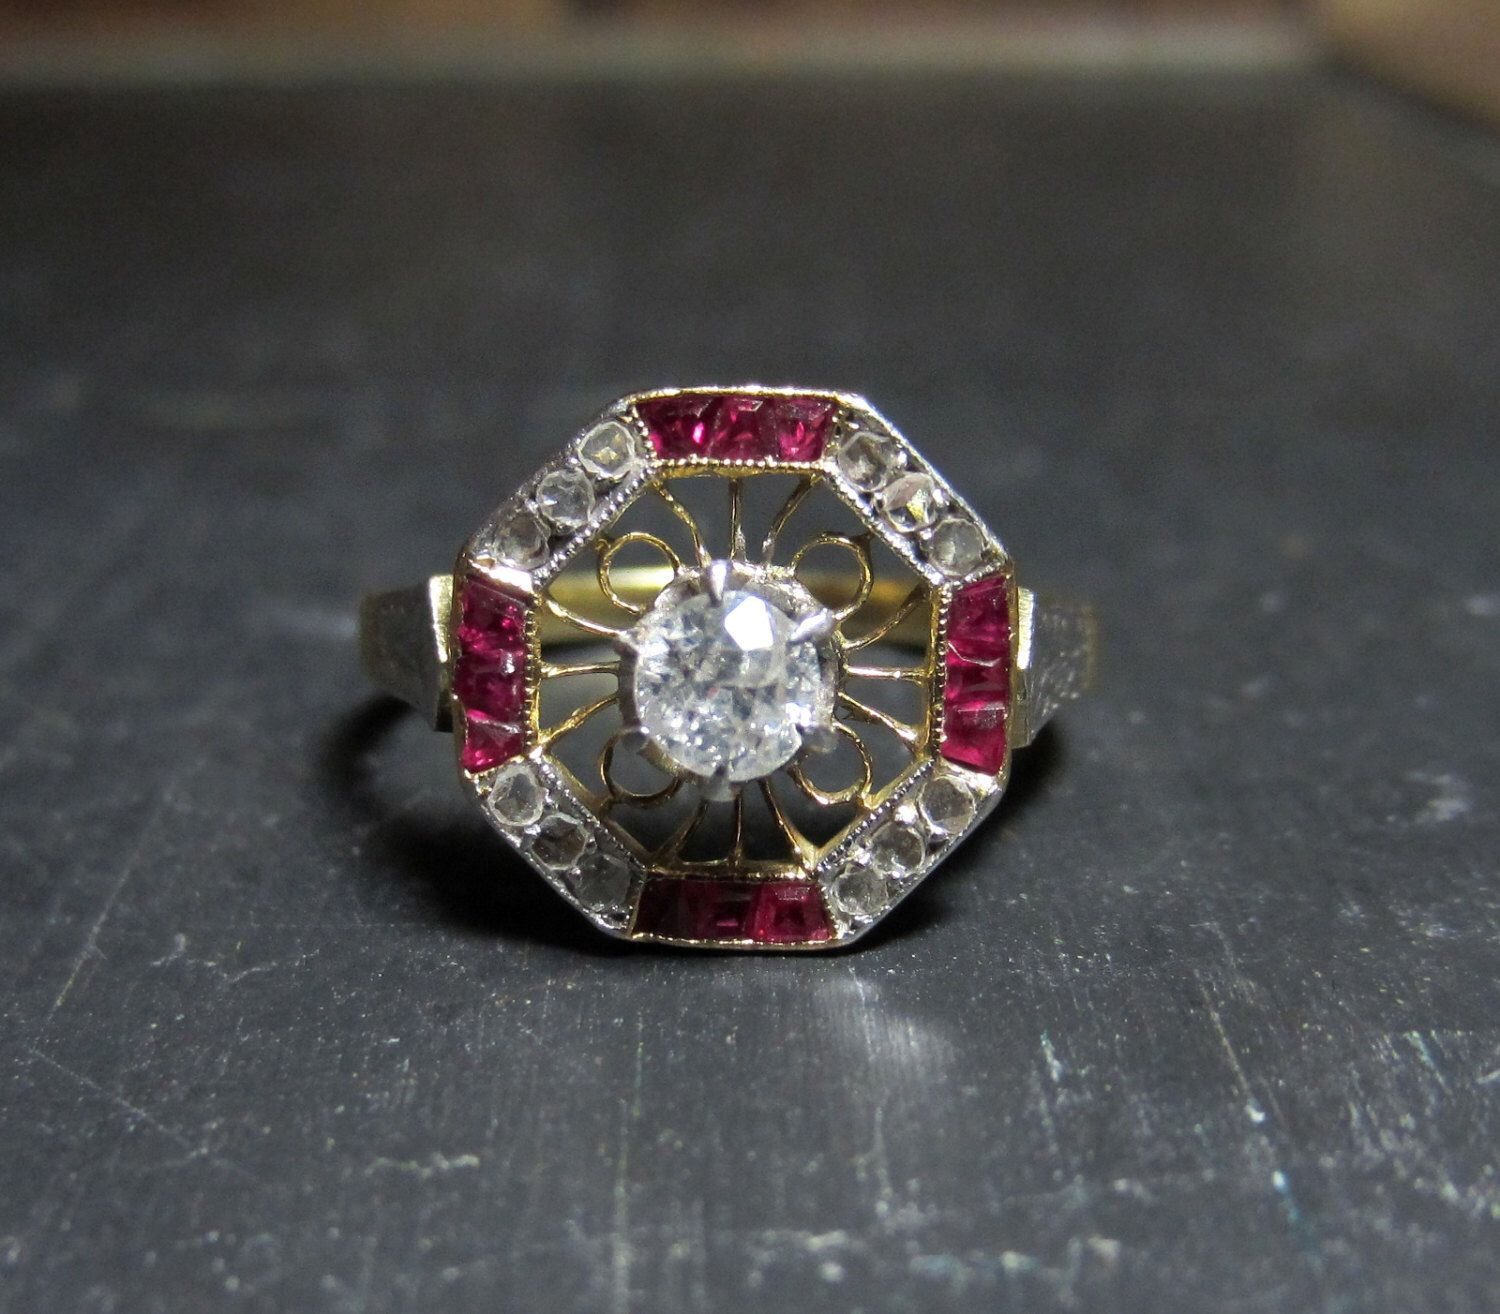 Antique Engagement Ring, Art Deco Old Euro Diamond .20ct and Ruby/Diamond Frame Ring 14k c. 1920, Vintage Engagement Ring, Edwardian Ring by BavierBrook on Etsy https://www.etsy.com/listing/485914549/antique-engagement-ring-art-deco-old